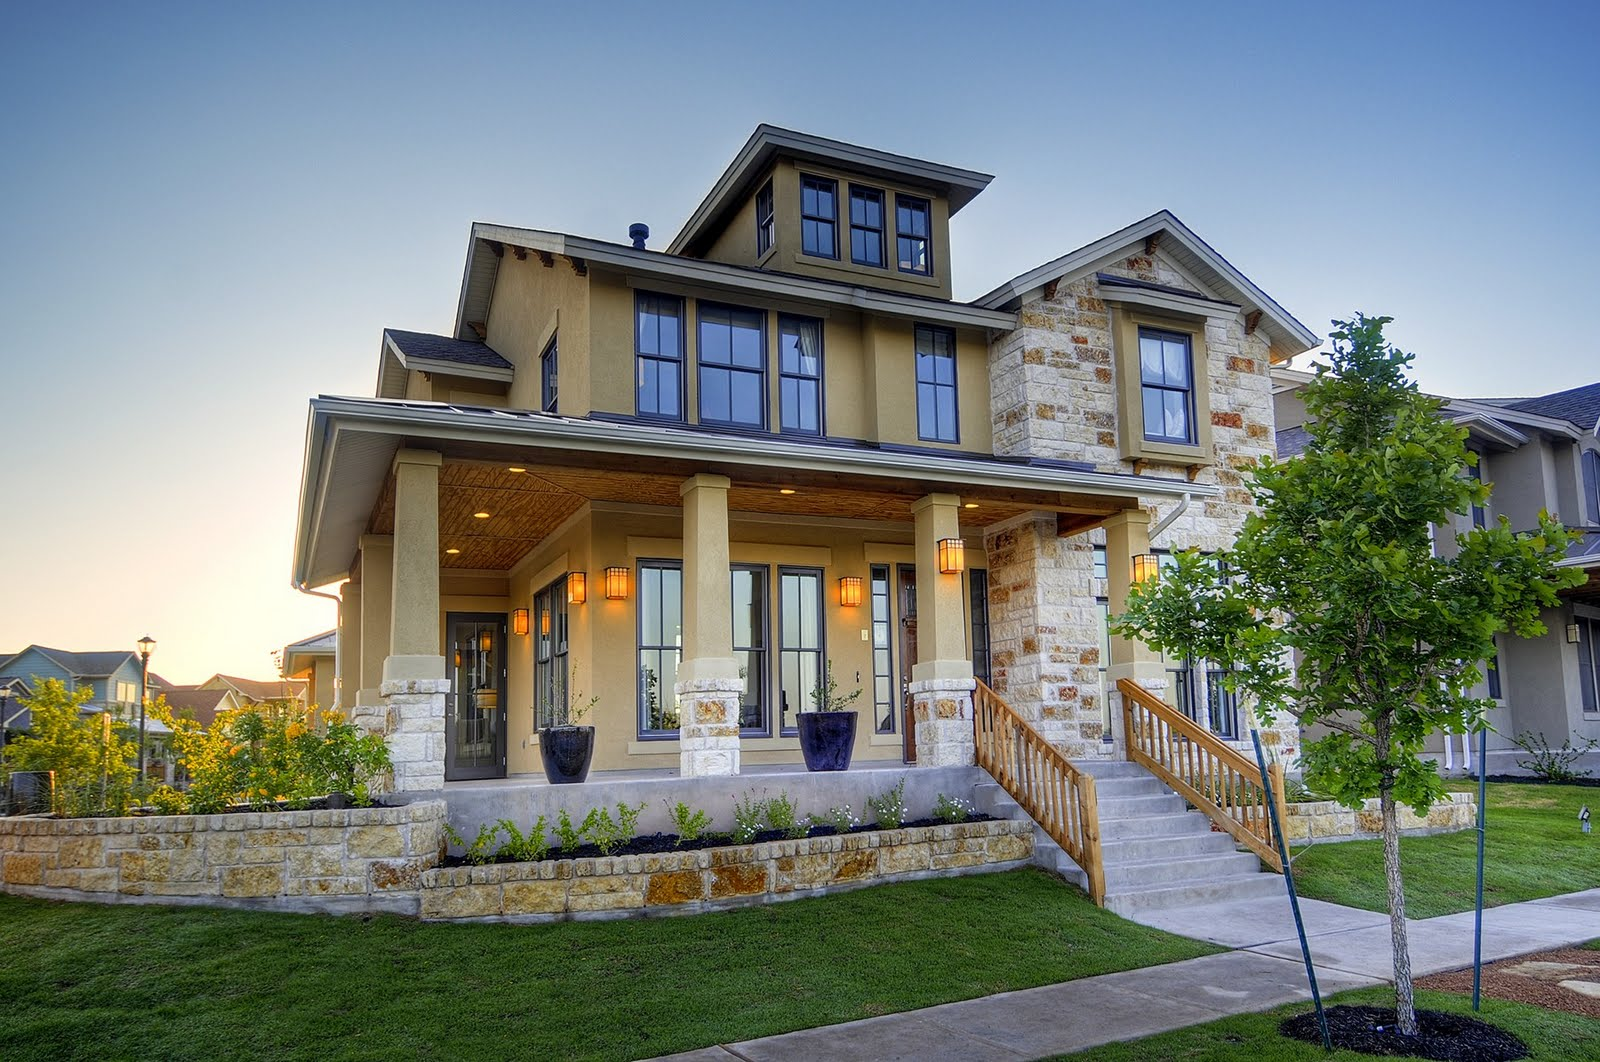 Modern homes designs front views texas. | Home Decorating